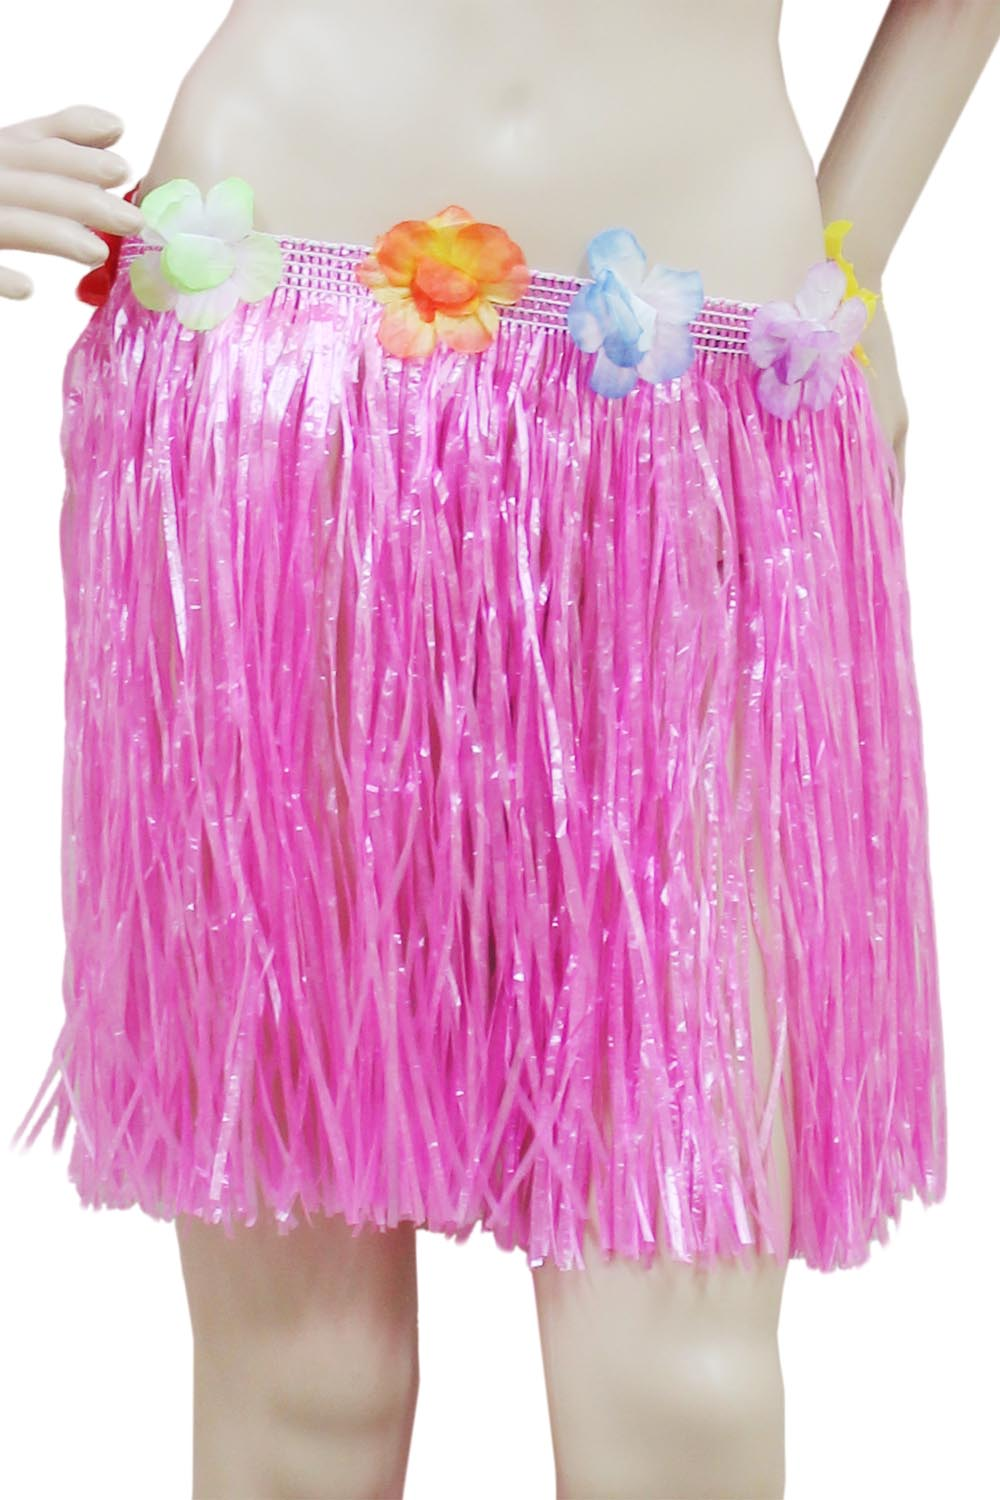 Pink Hula Skirt with Flowers (40cm)